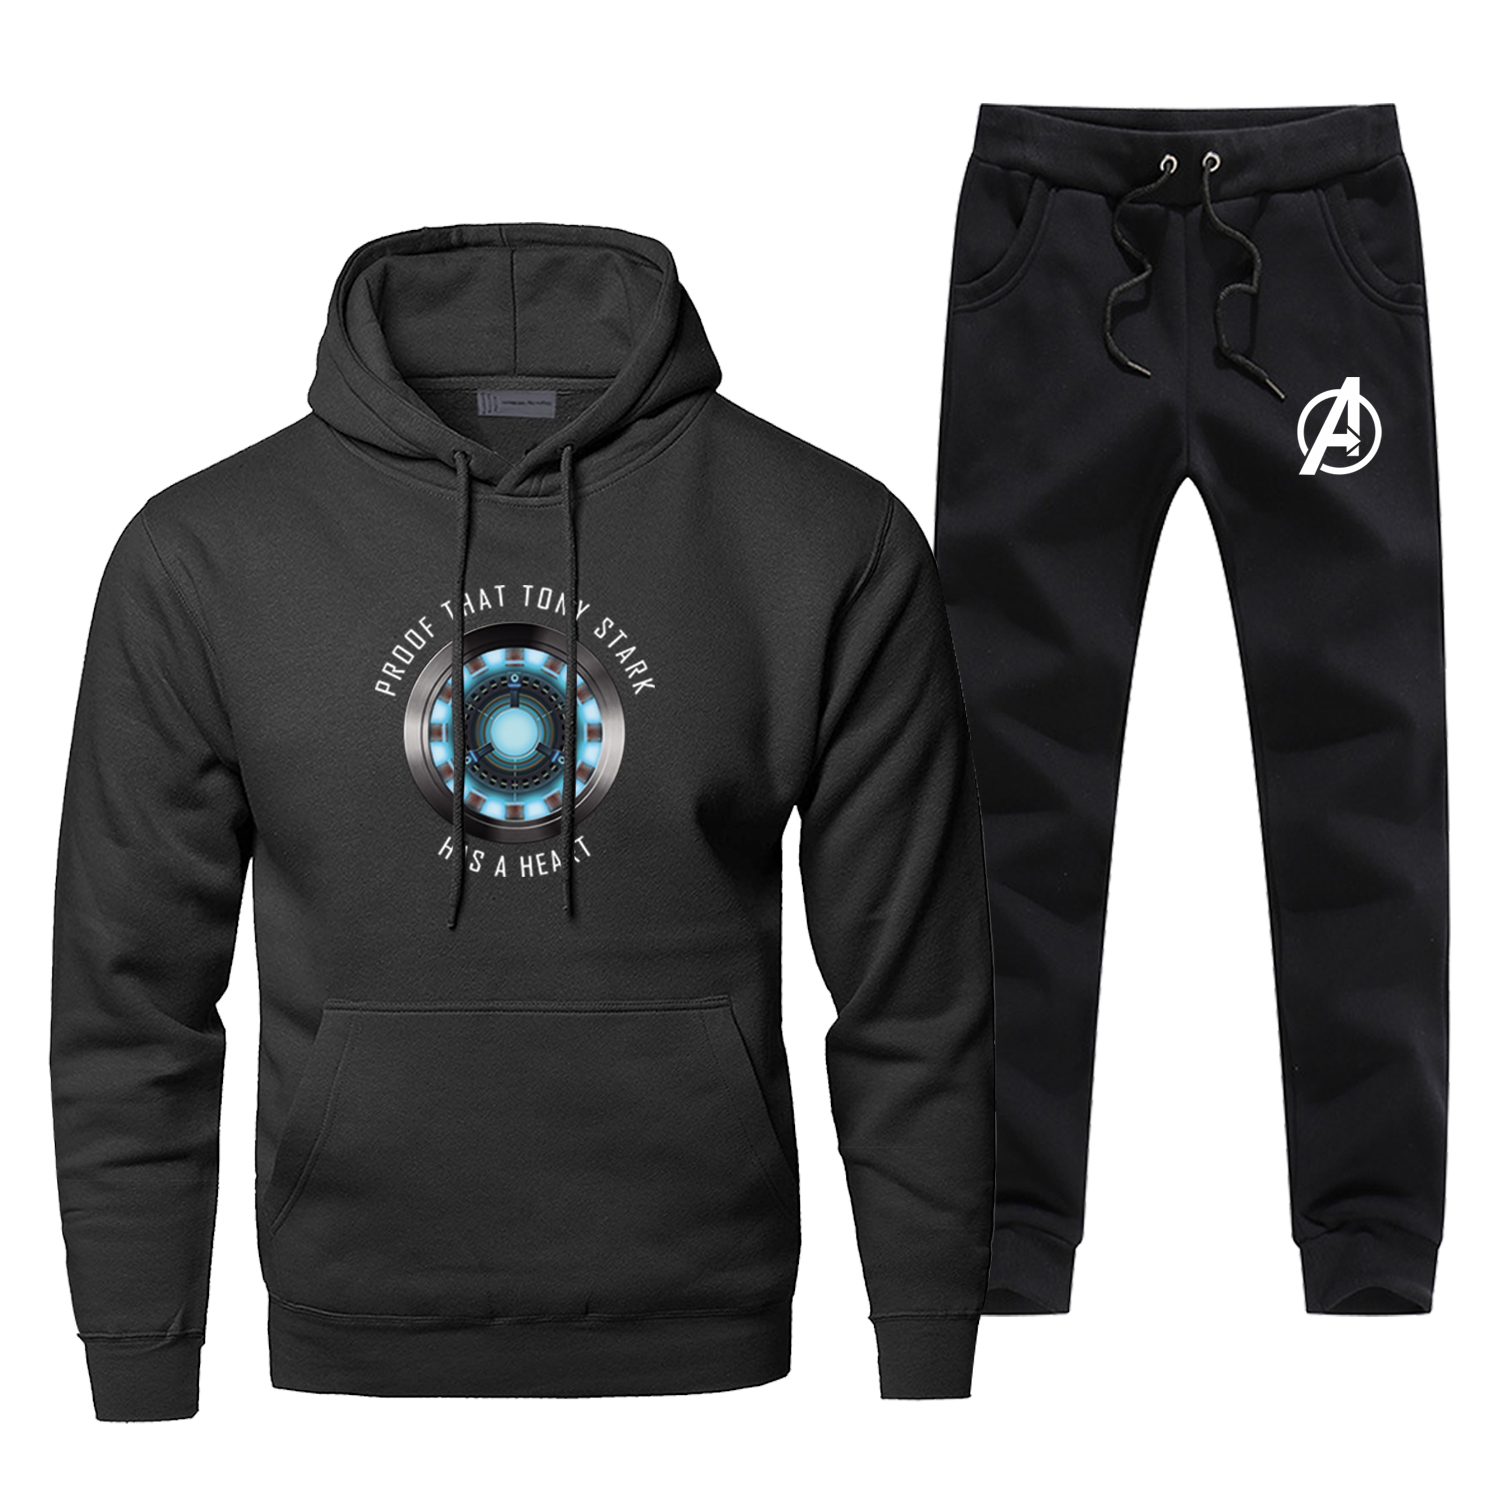 New Arrival Men's Jogging Iron Man Proof That Tony Stark Has A Heart Male Set Cosplat The Avengers Hoodies Fashion Casaul Pants